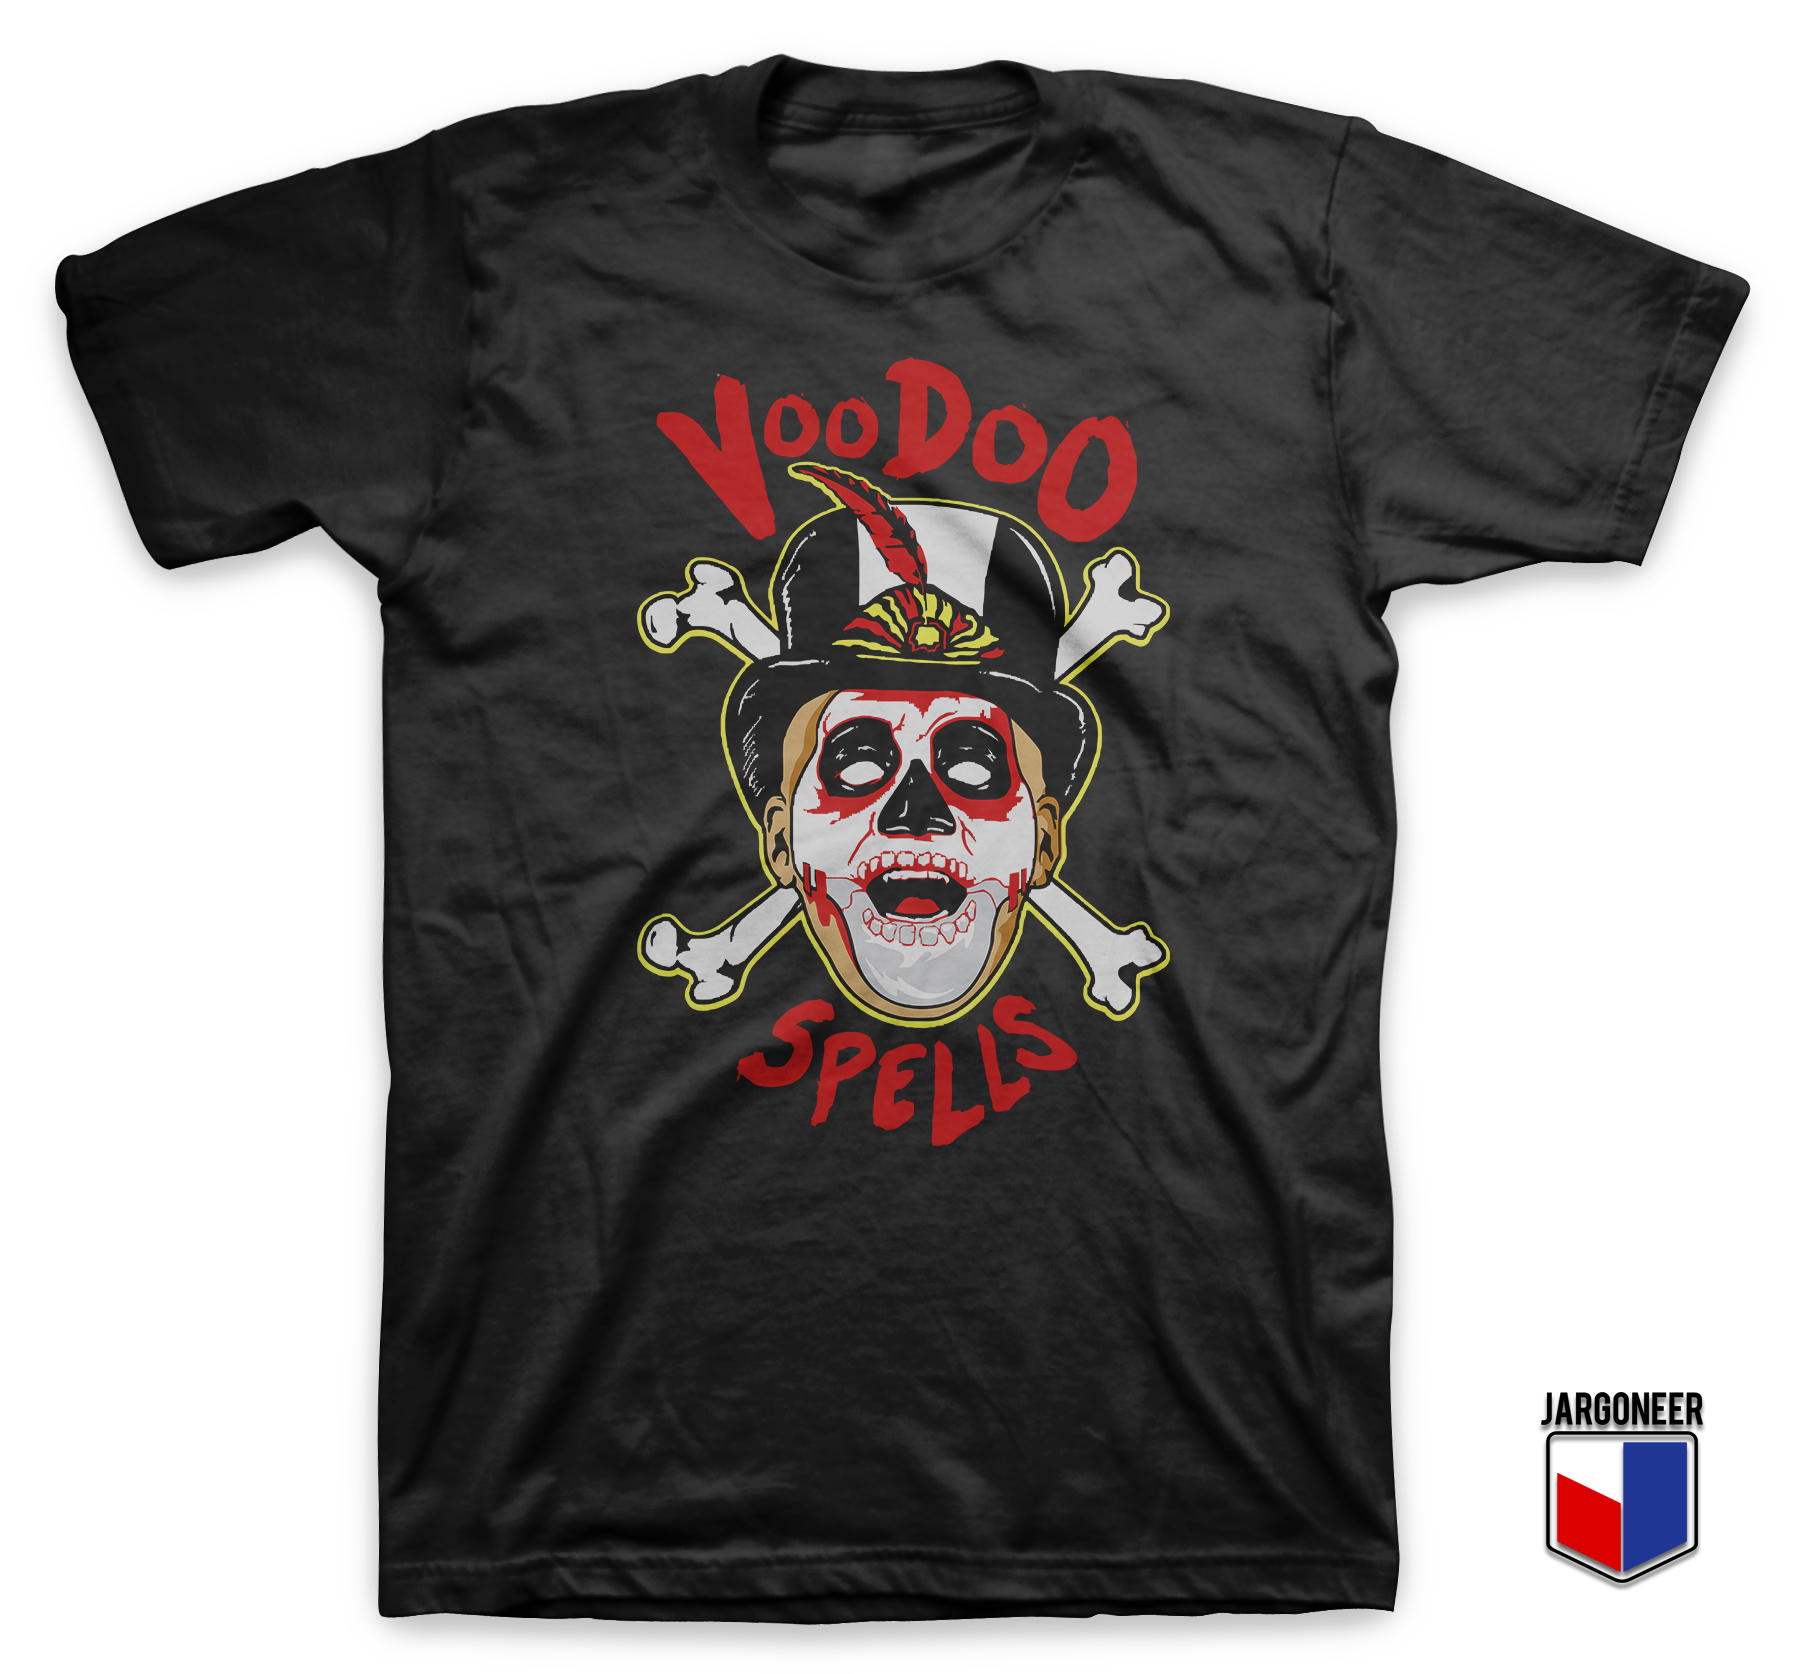 The Voodoo Spells T-Shirt